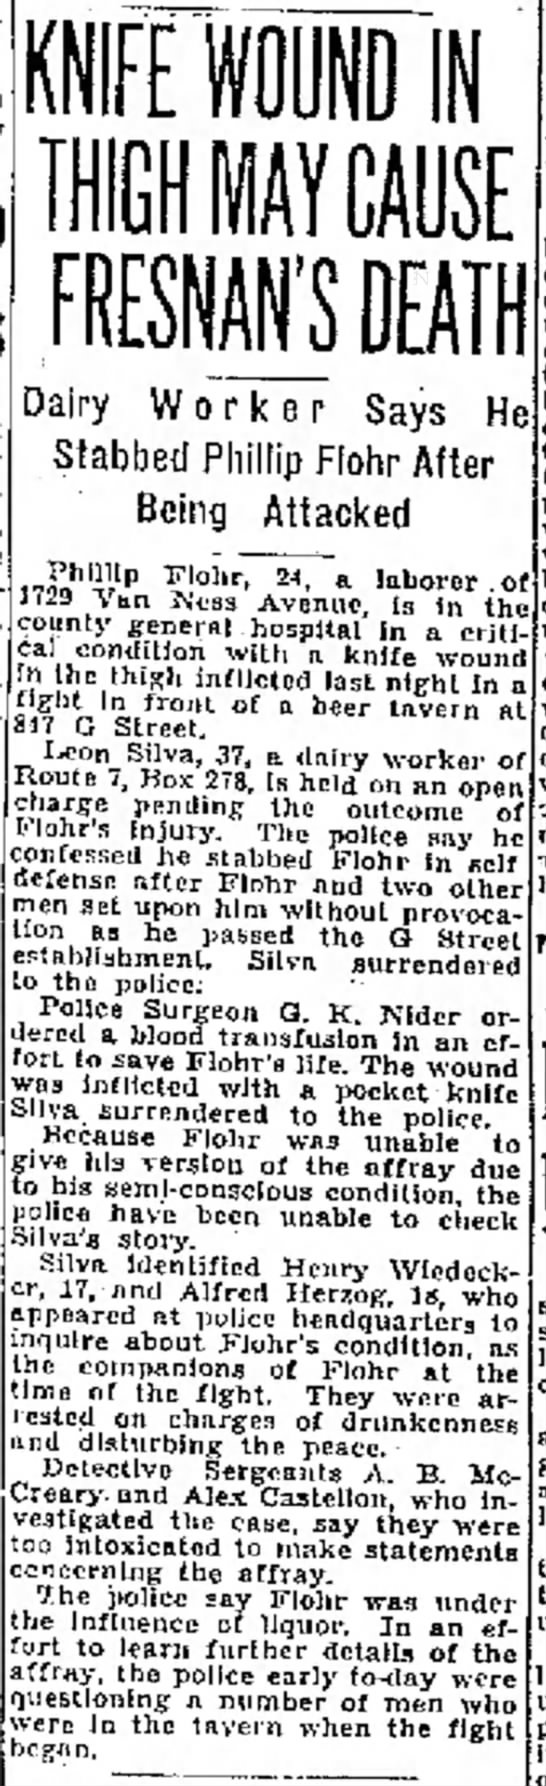 Phillip Flohr, Knife Wound, 16 Sep 1934, The Fresno Bee, Fresno, CA - at the r of the in- two California. engaged e p...